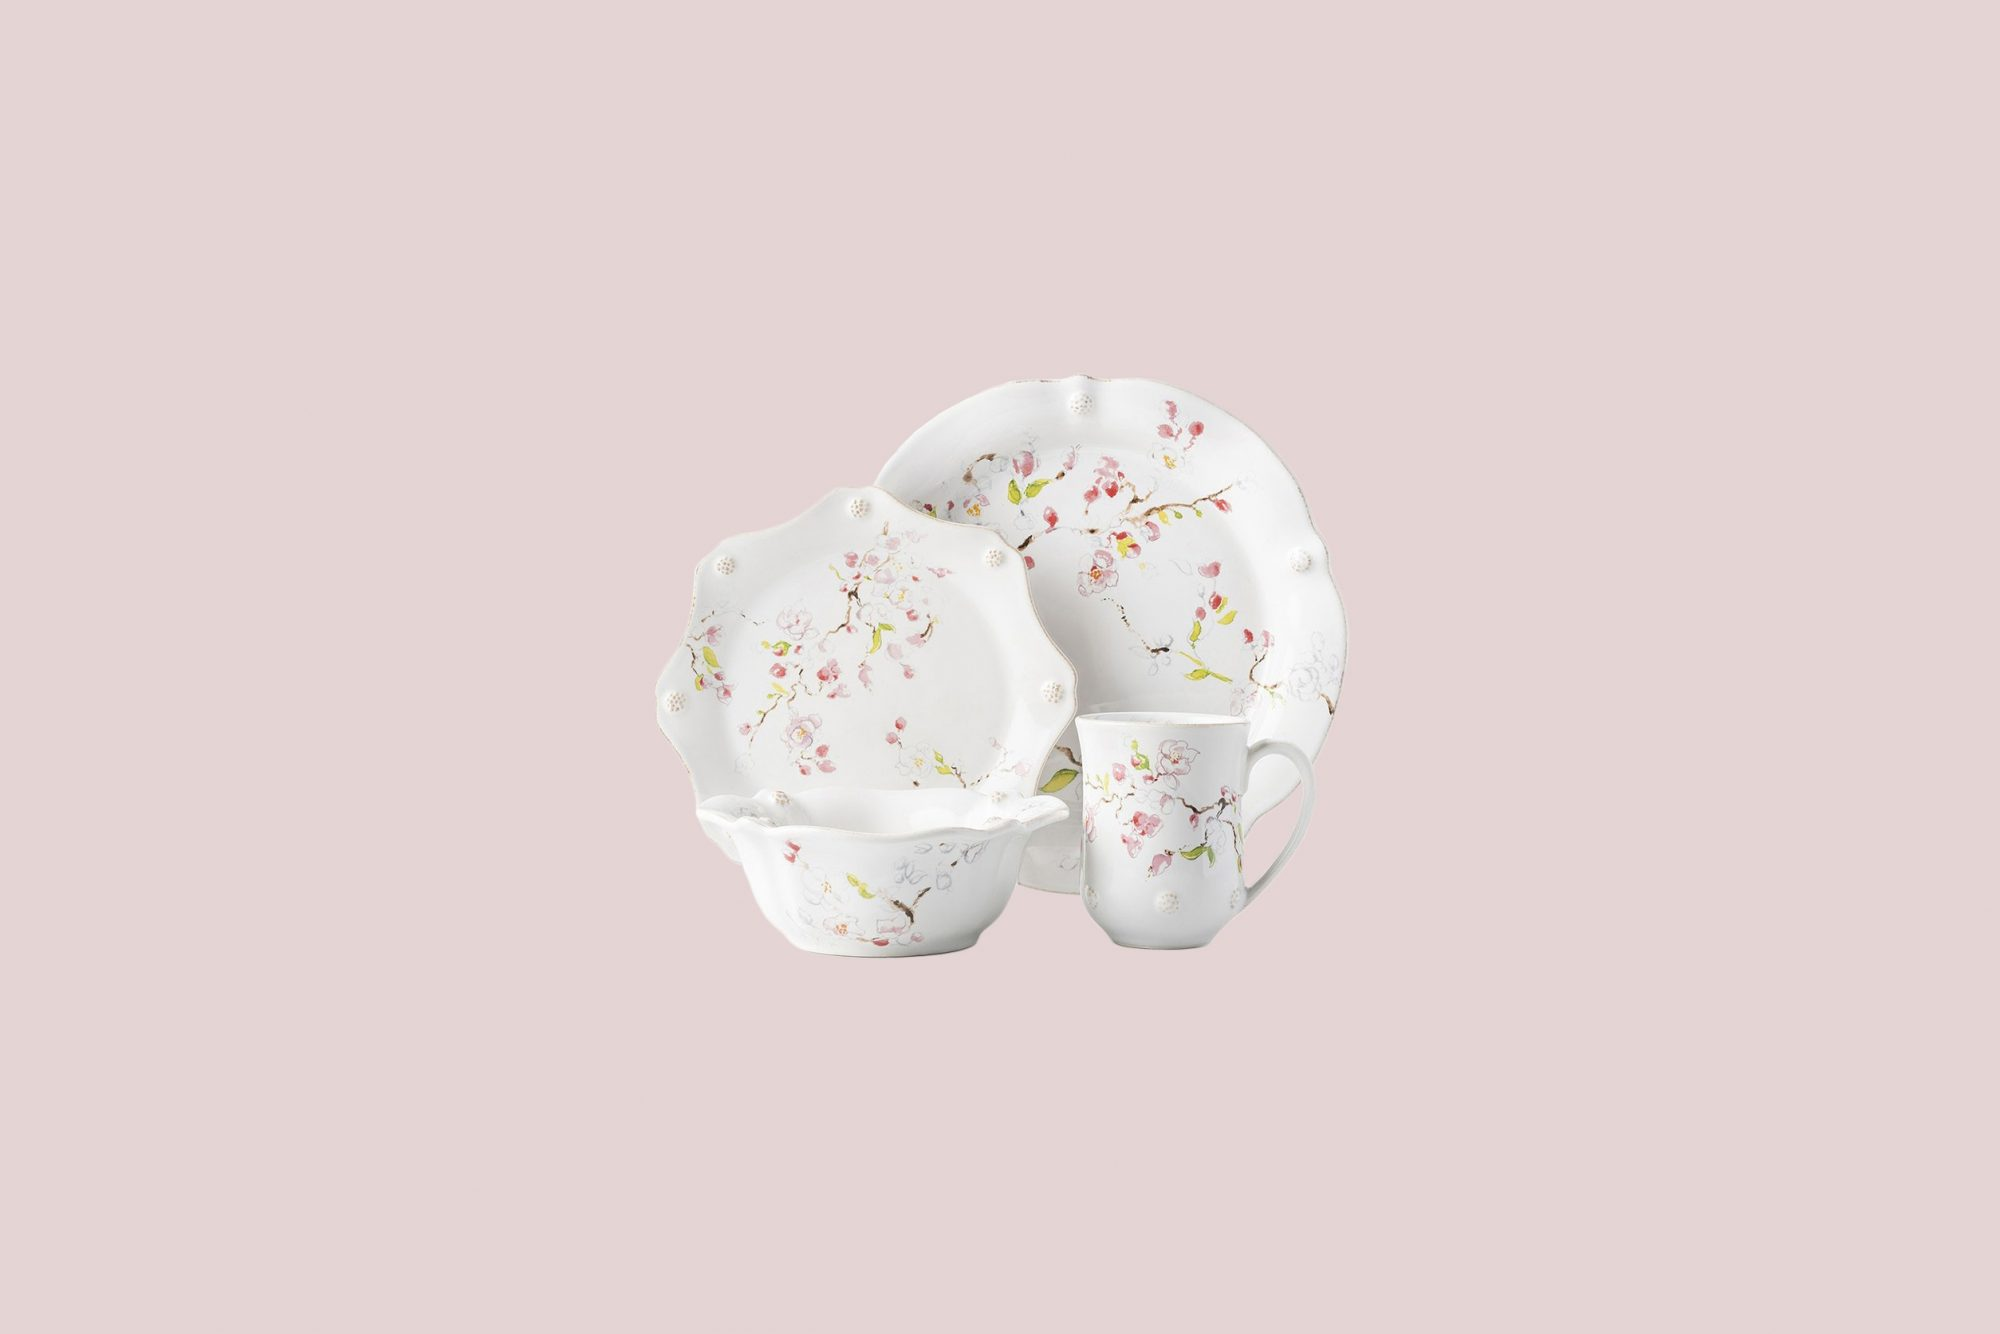 """Juliska """"Berry & Thread"""" Floral Sketch Place Setting in Cherry Blossom"""